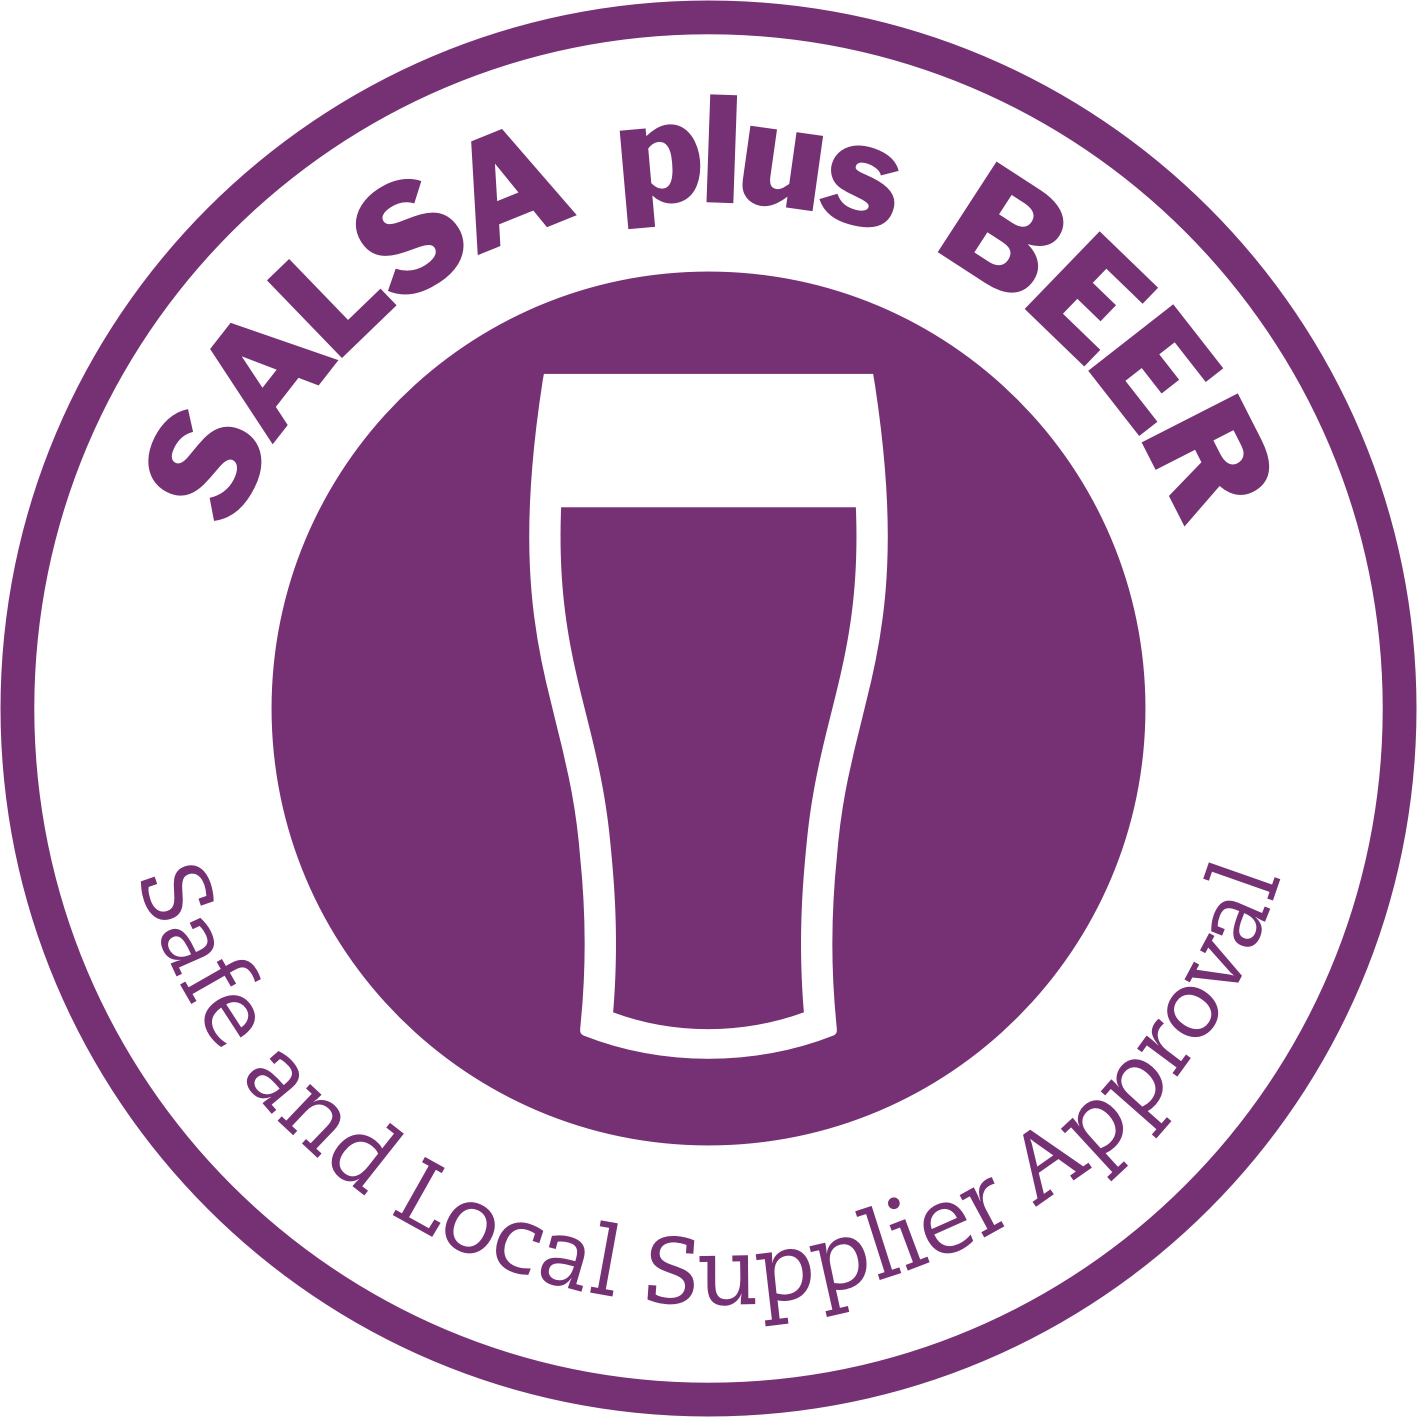 SALSA plus BEER. Safe and Local Supplier Approval